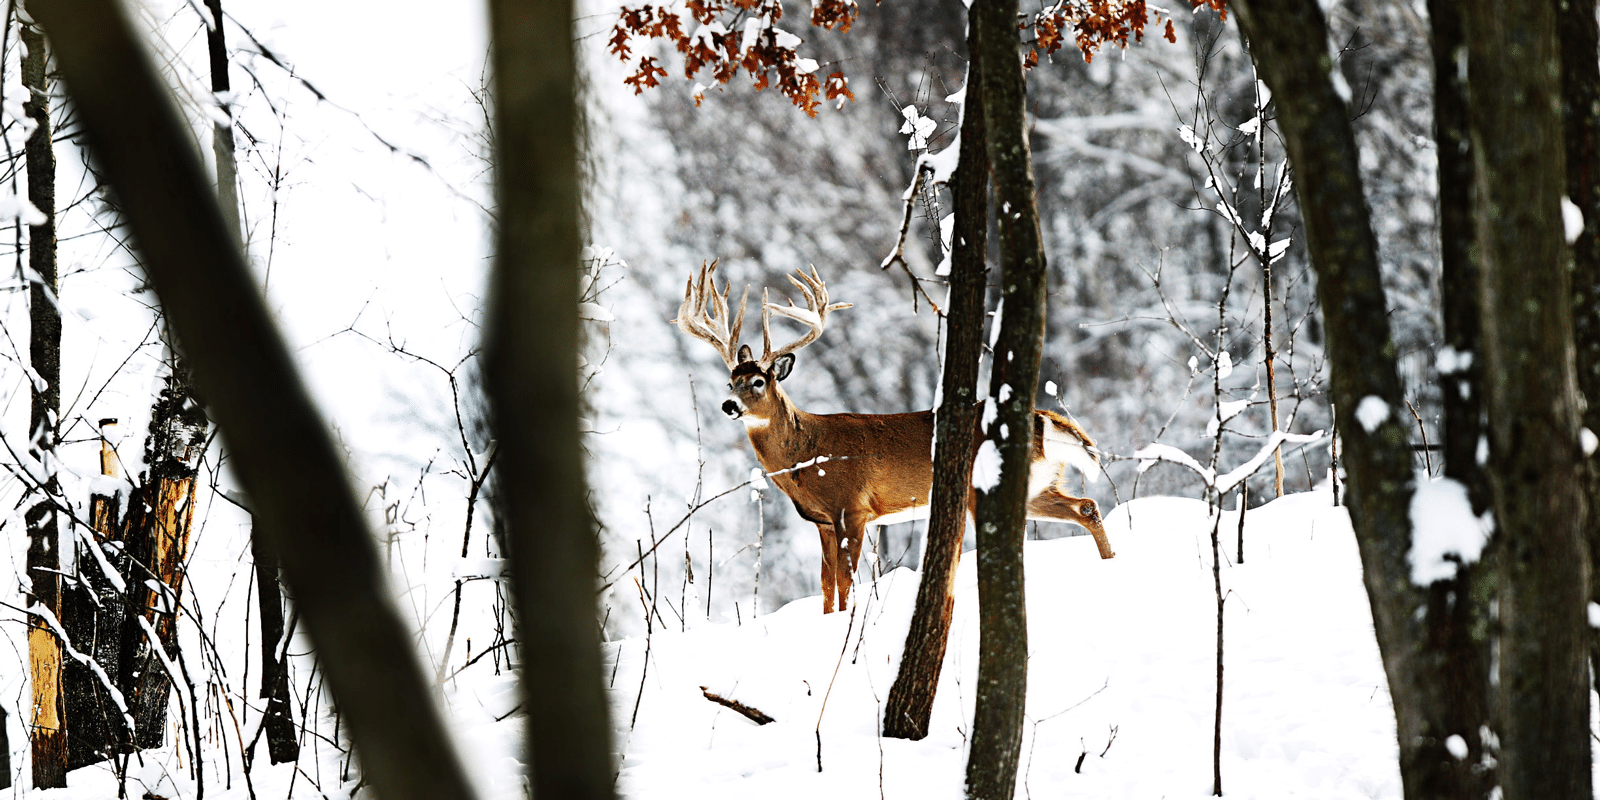 A large, alert buck seen through the trees